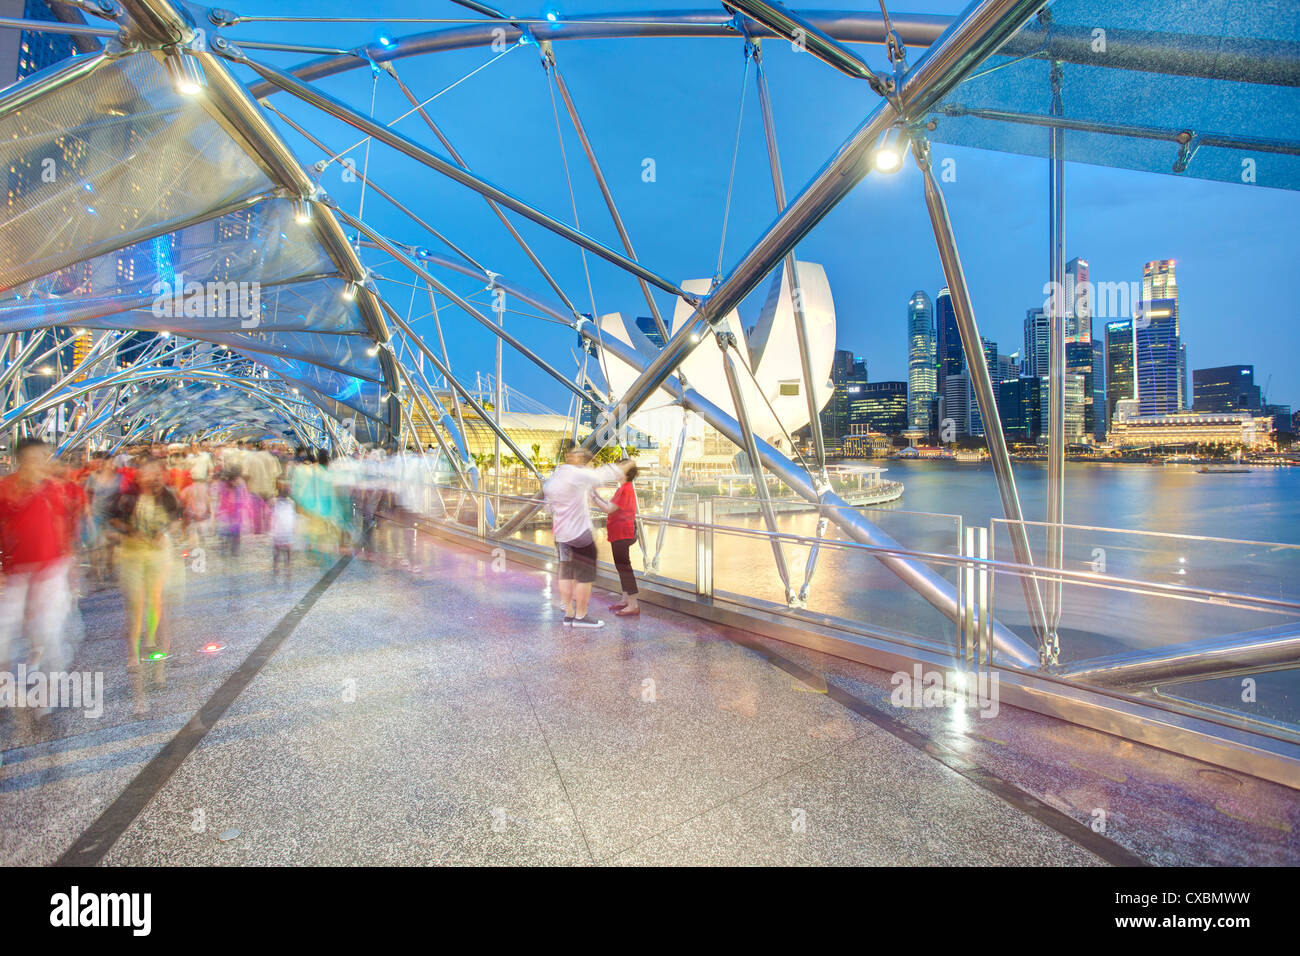 L'Helix Bridge et Marina Bay Sands, Marina Bay, à Singapour, en Asie du Sud-Est, l'Asie Photo Stock